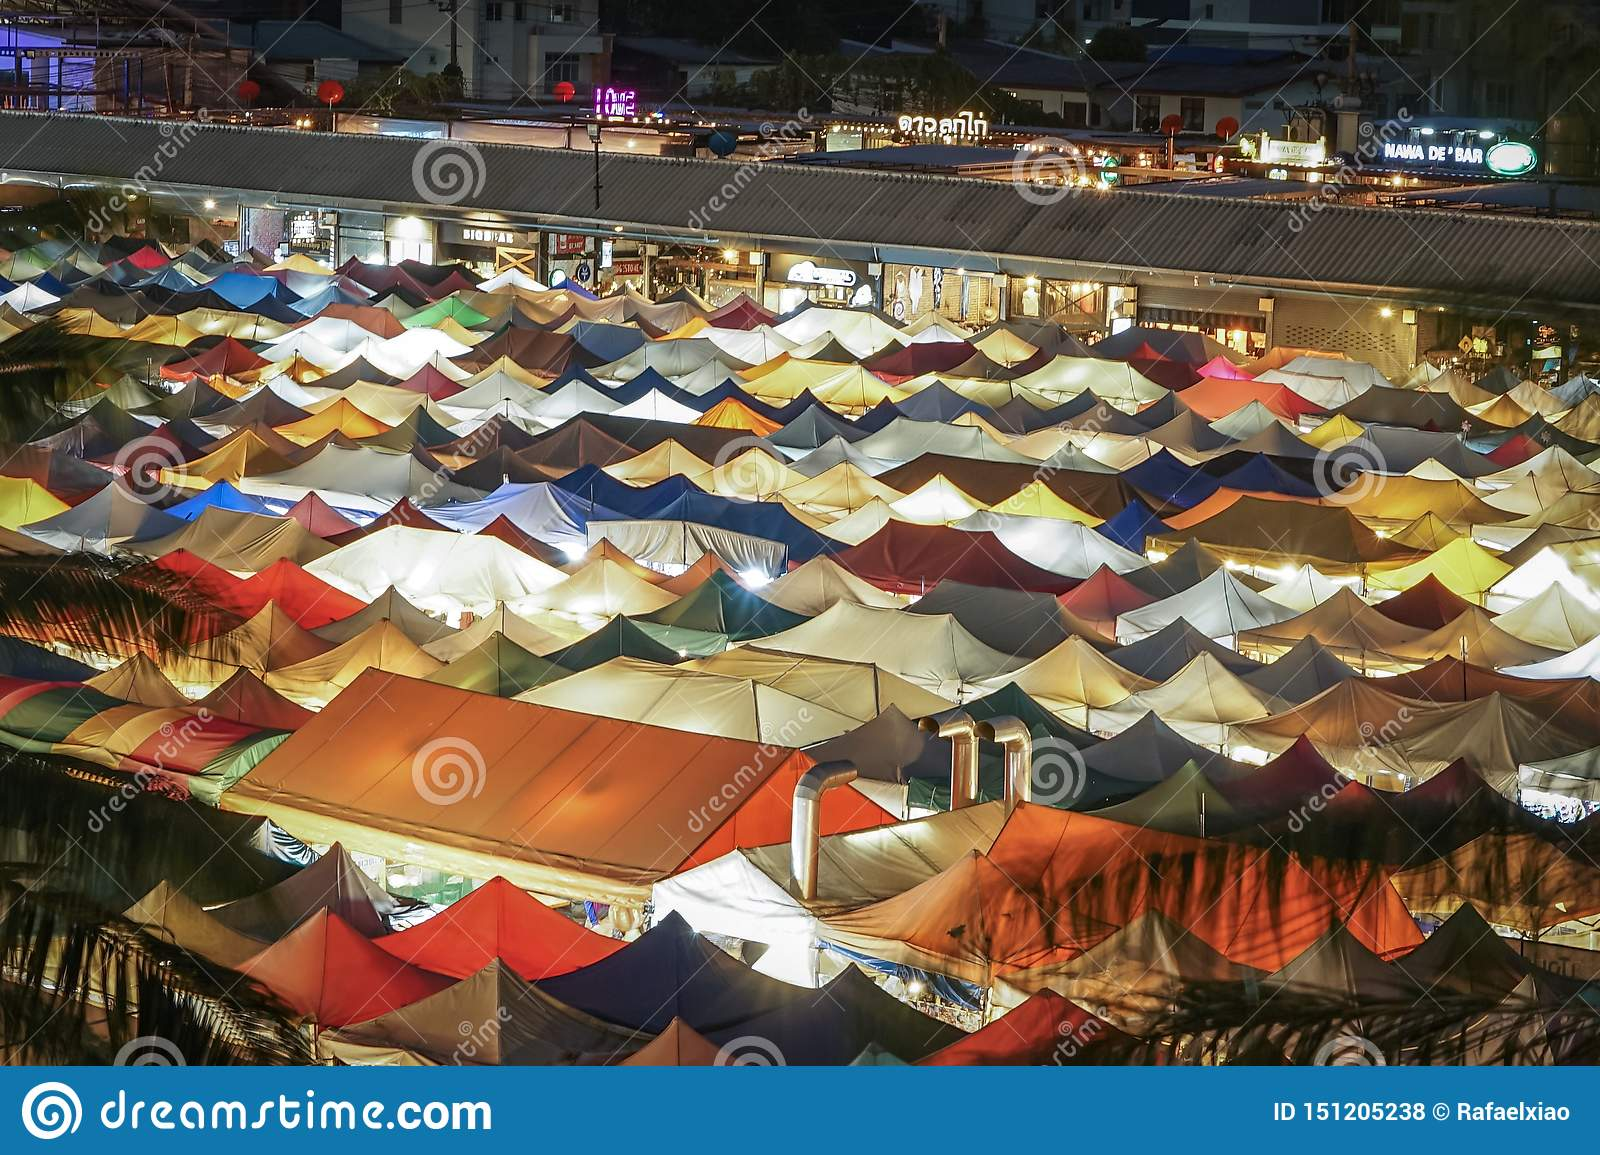 Colorful Roofs of Night Market